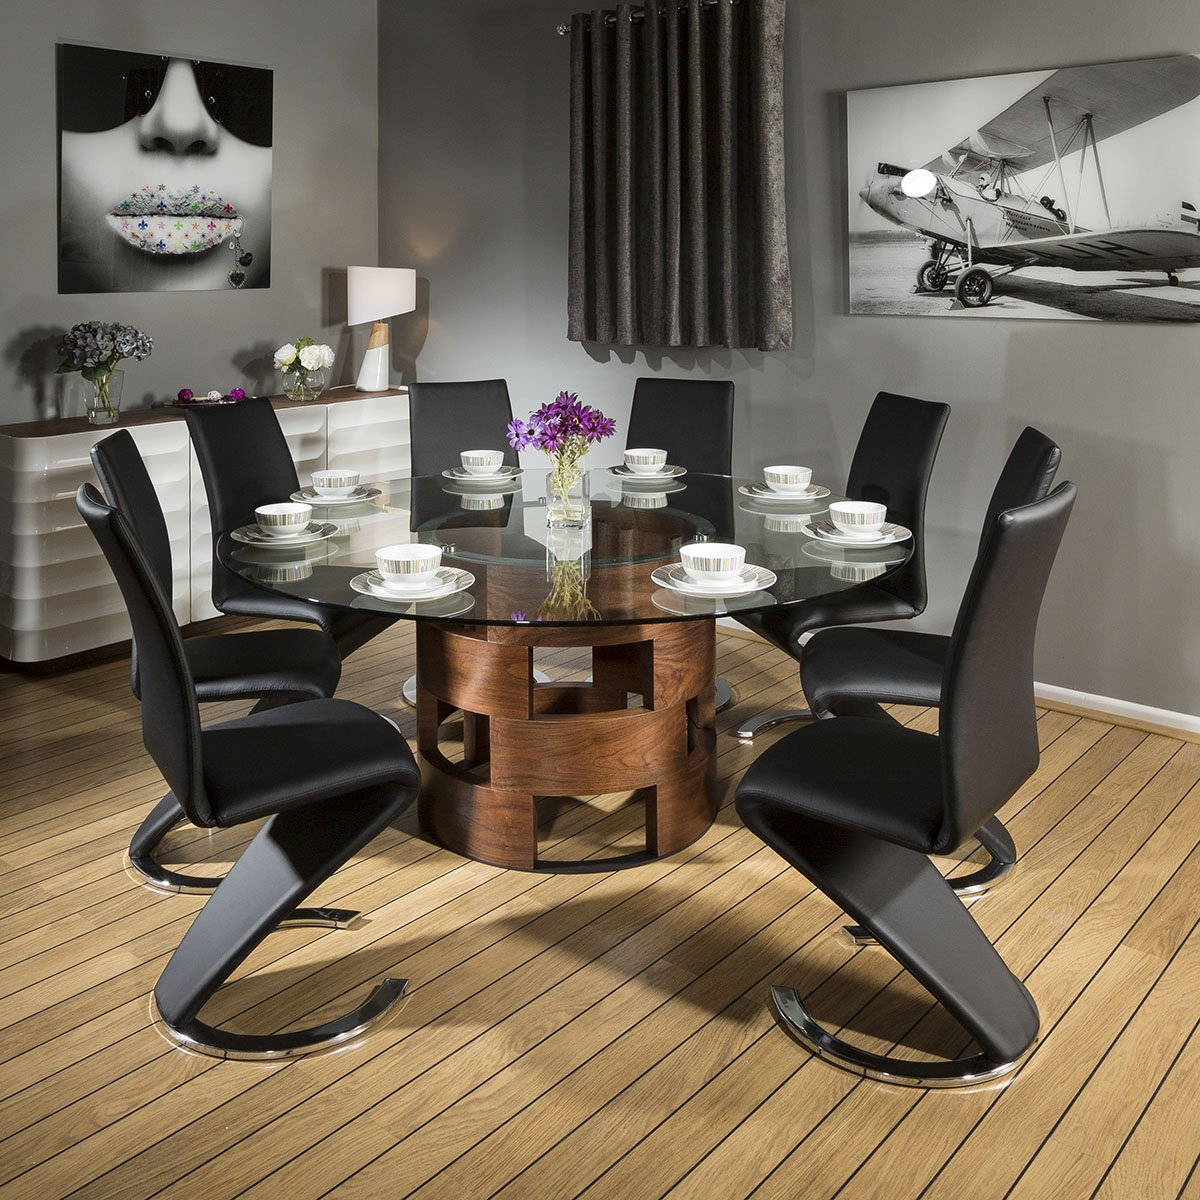 Large Round Glass Top Walnut Dining Table + 9 Black Z Chairs 9 ...